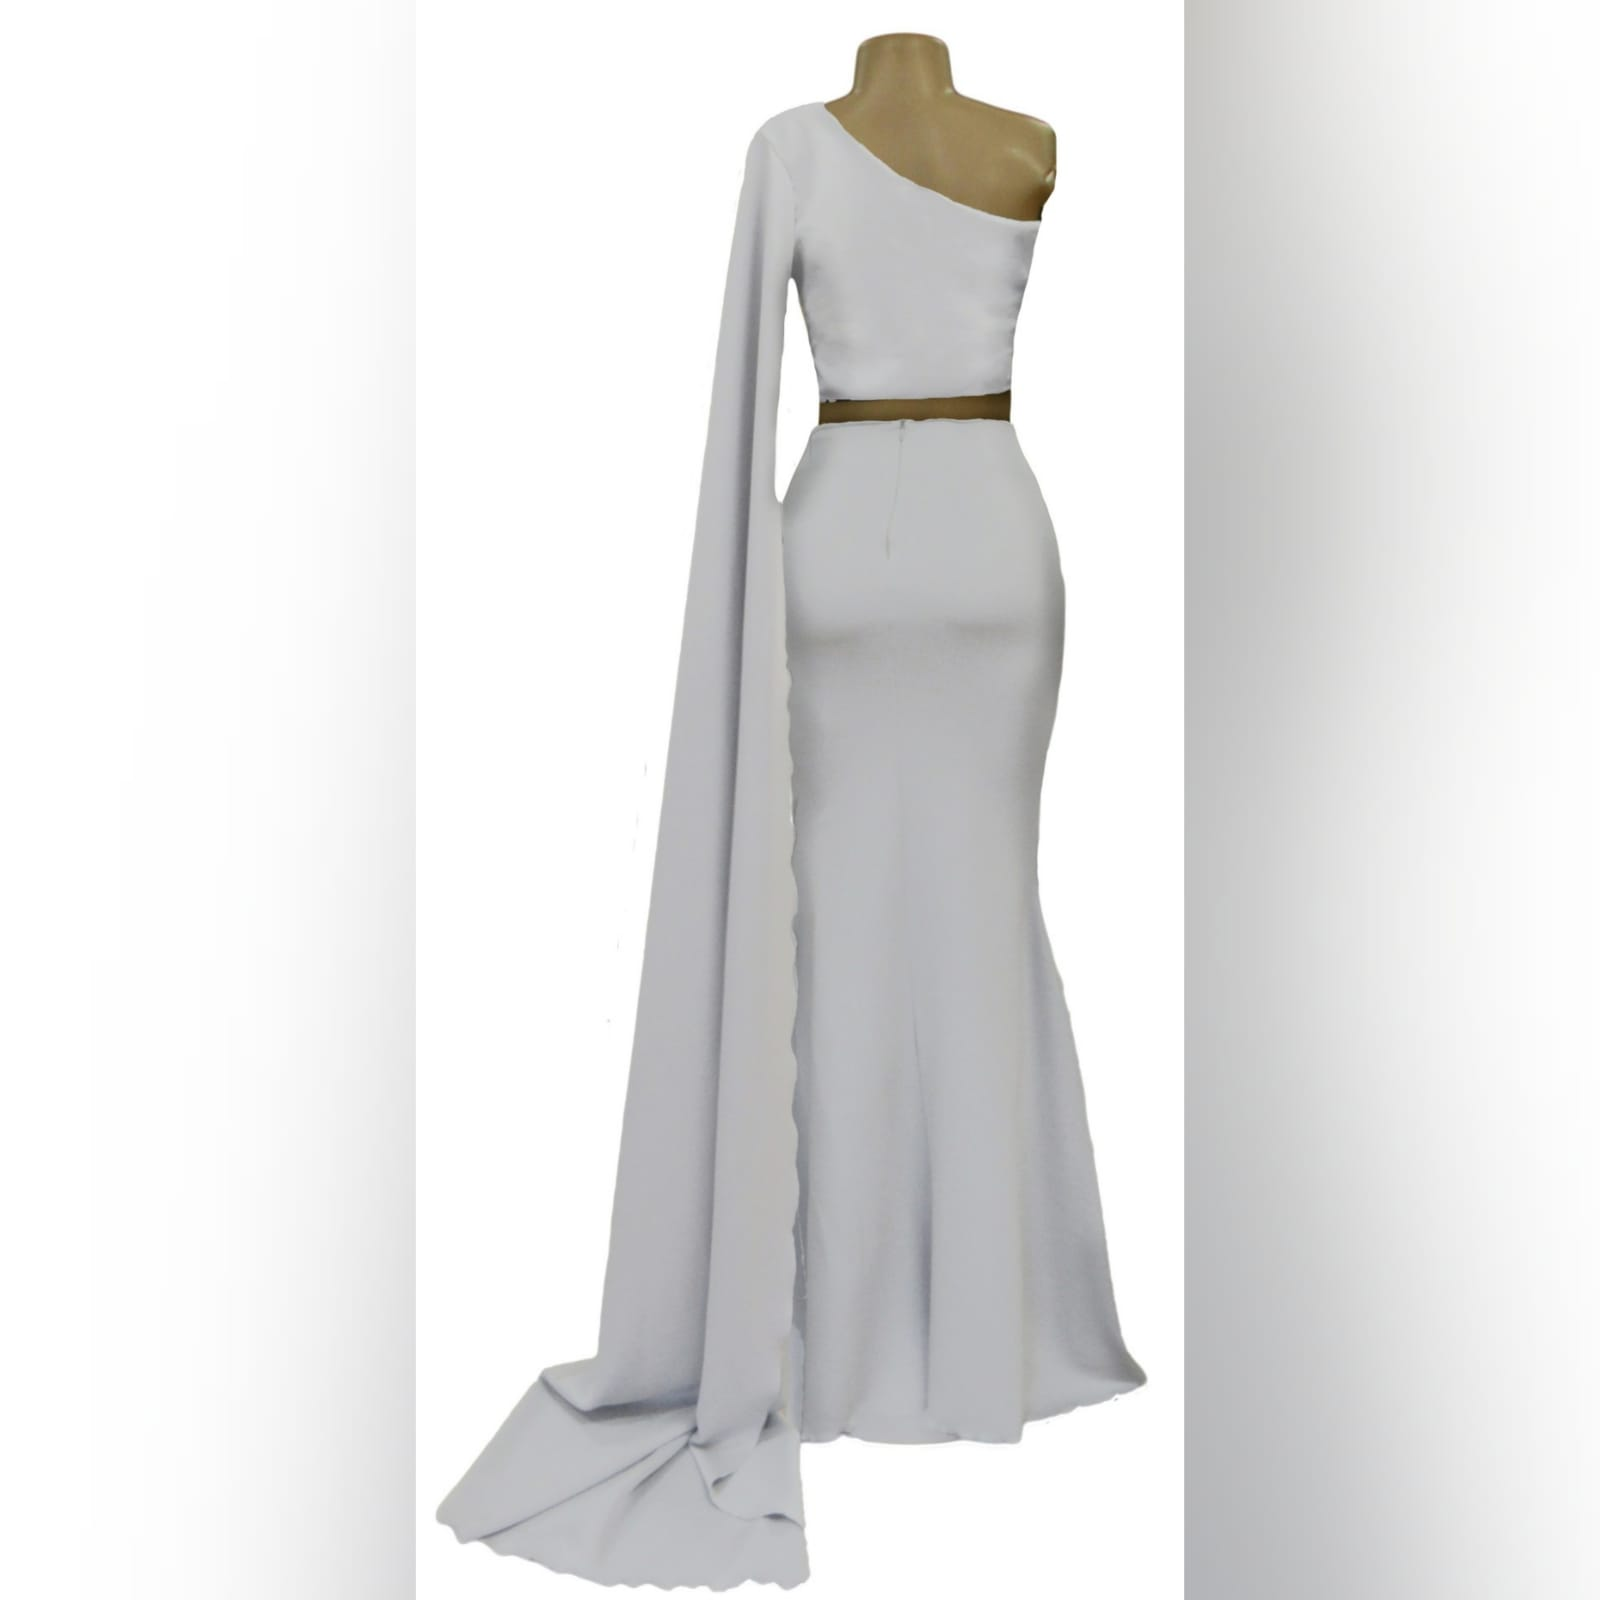 Pale grey 2 piece mermaid prom dress 3 pale grey 2 piece mermaid prom dress. Fitted crop top with wide single sleeve creating a train. Mermaid skirt with a little train.